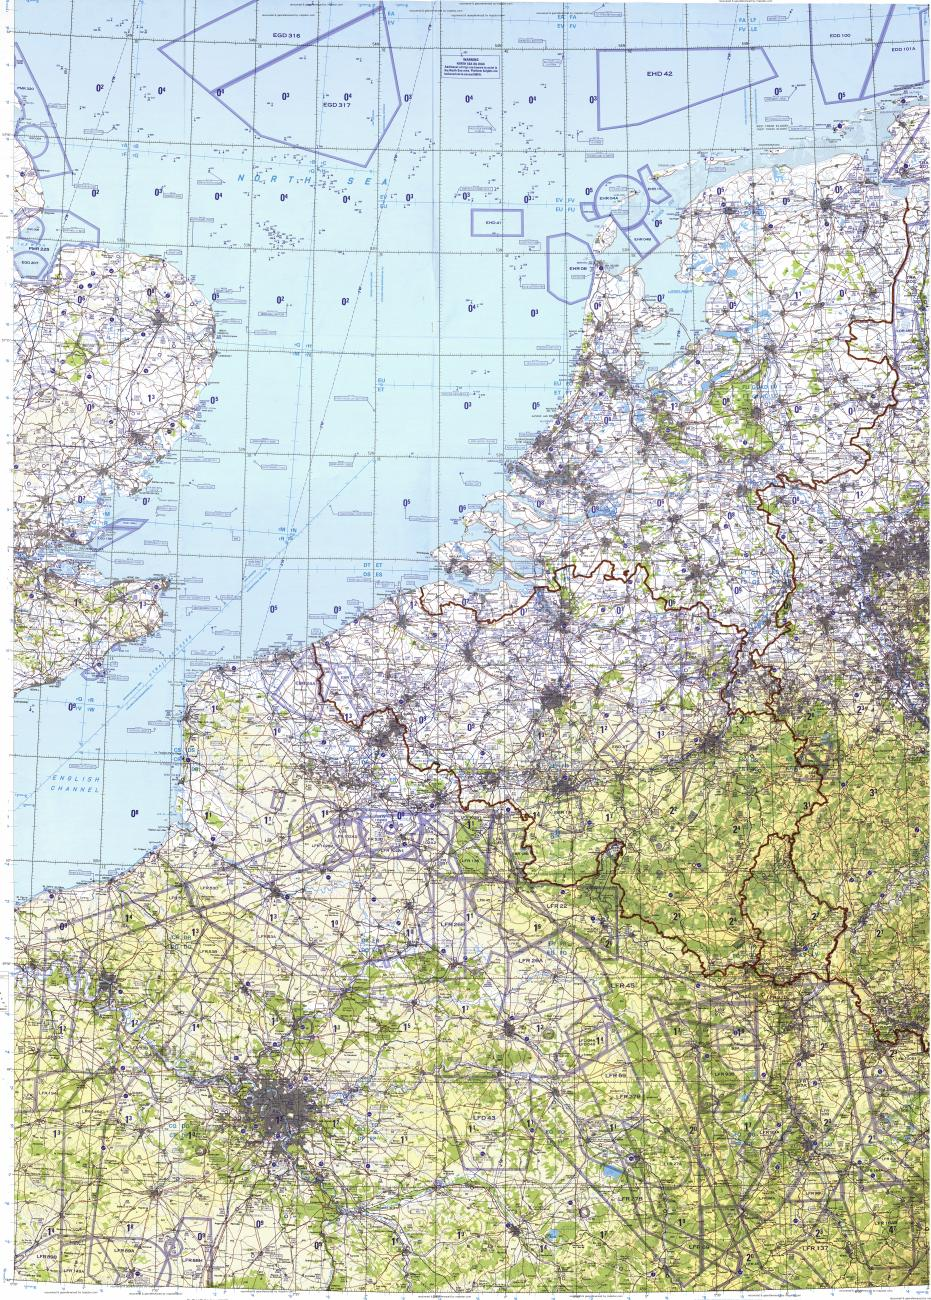 Download topographic map in area of Paris Brussels Dusseldorf – Topographic Map of Belgium